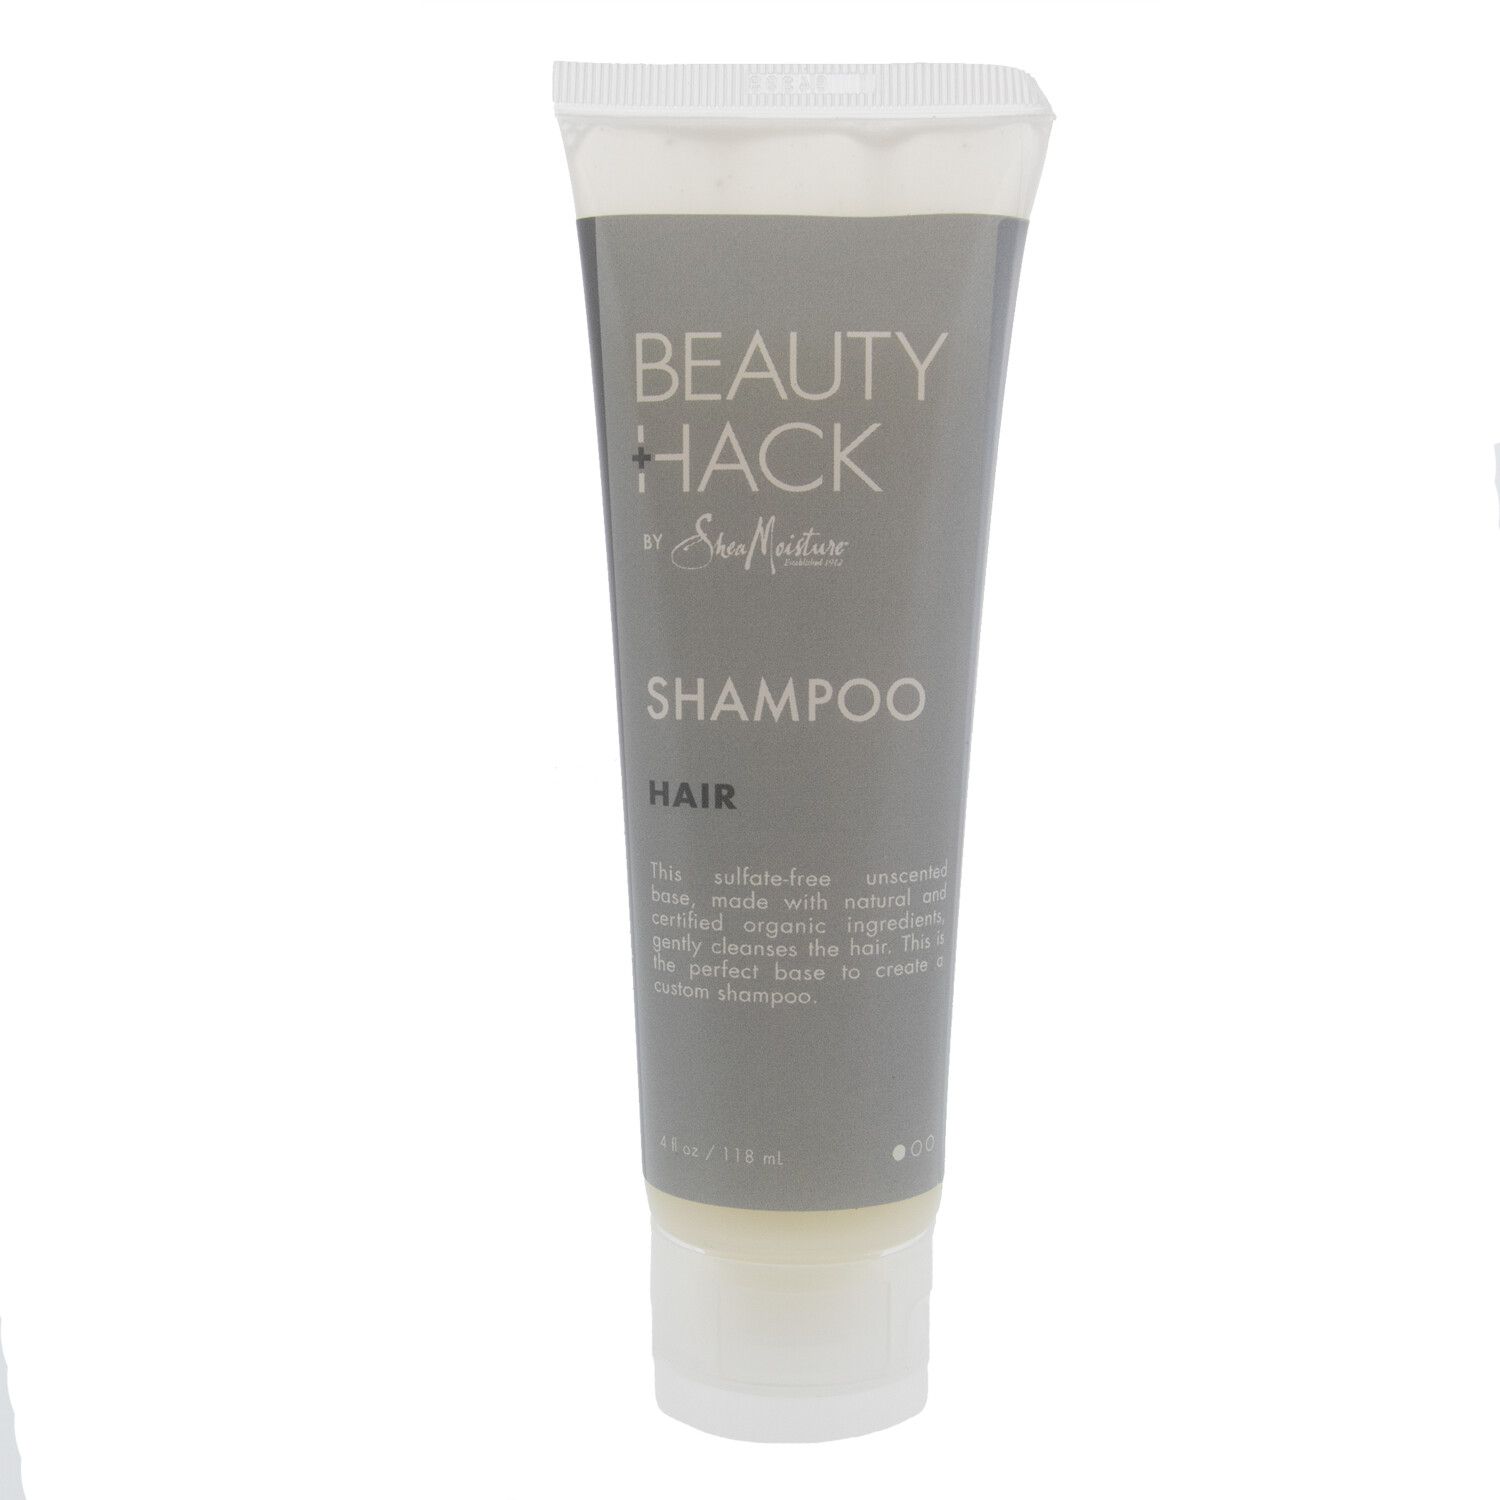 SheaMoisture Shampoo Beauty Hack Pure Base Step 1, Restorative - 4 oz